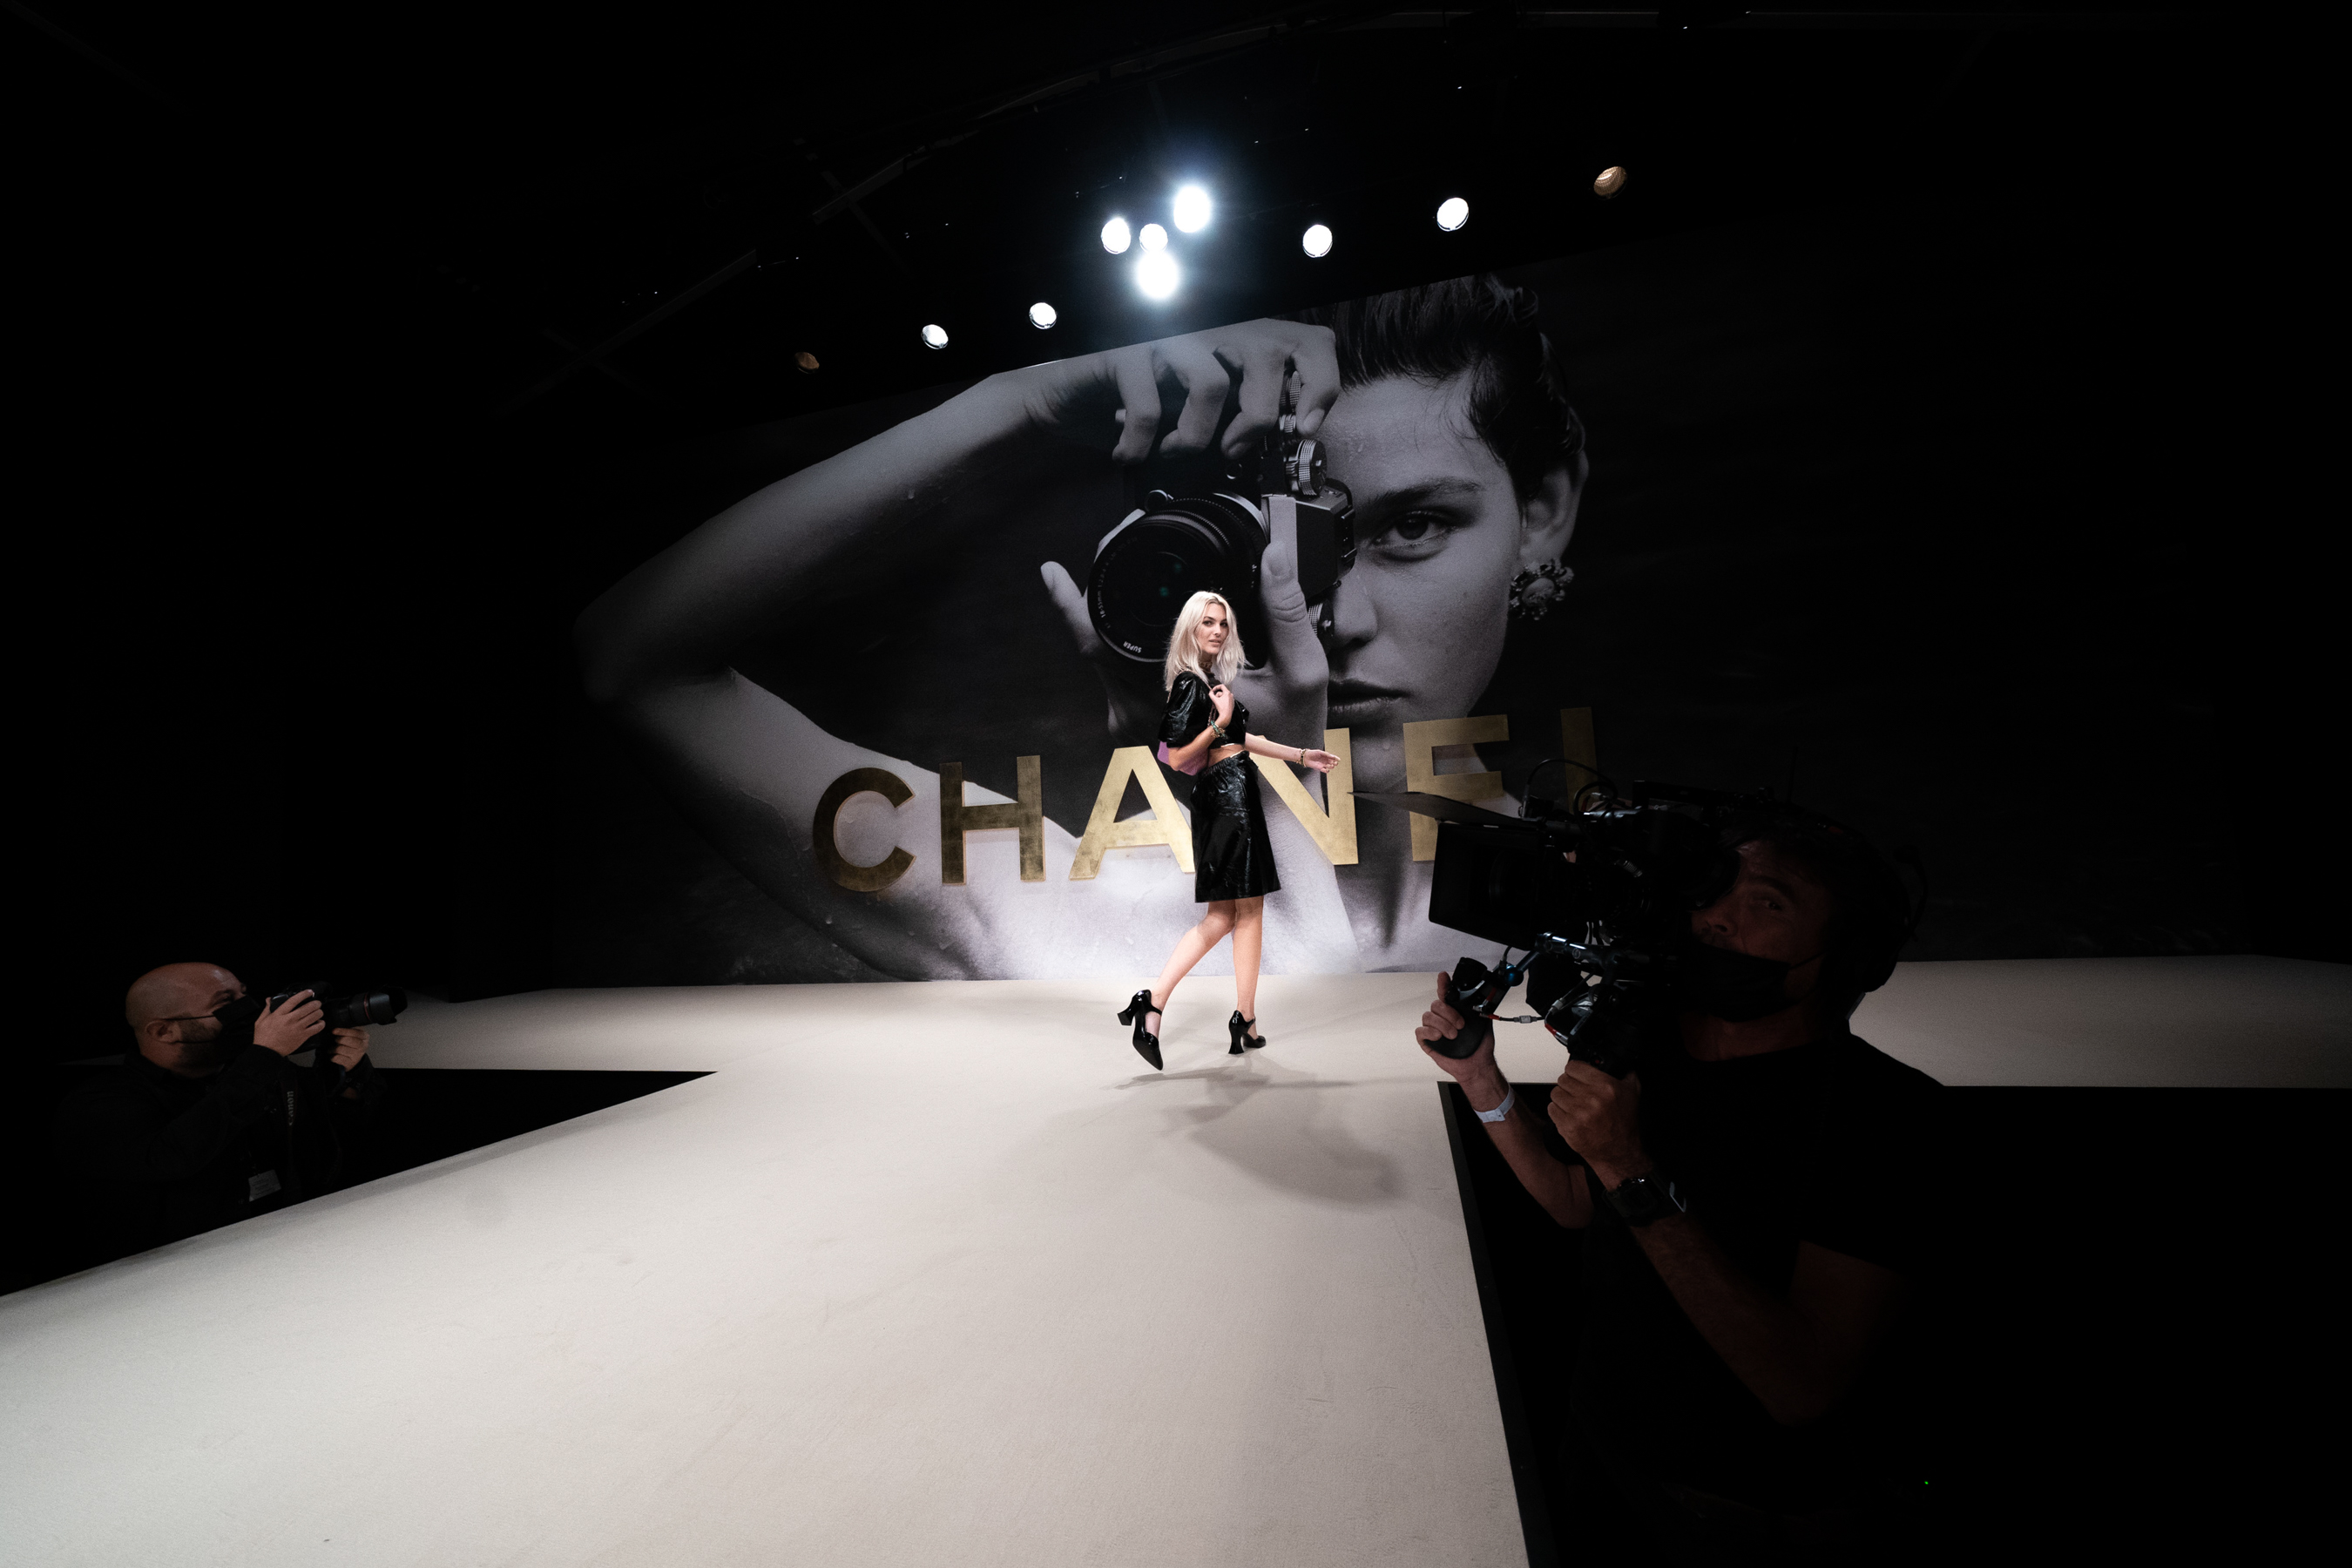 Chanel Spring 2022 Atmosphere Fashion Show